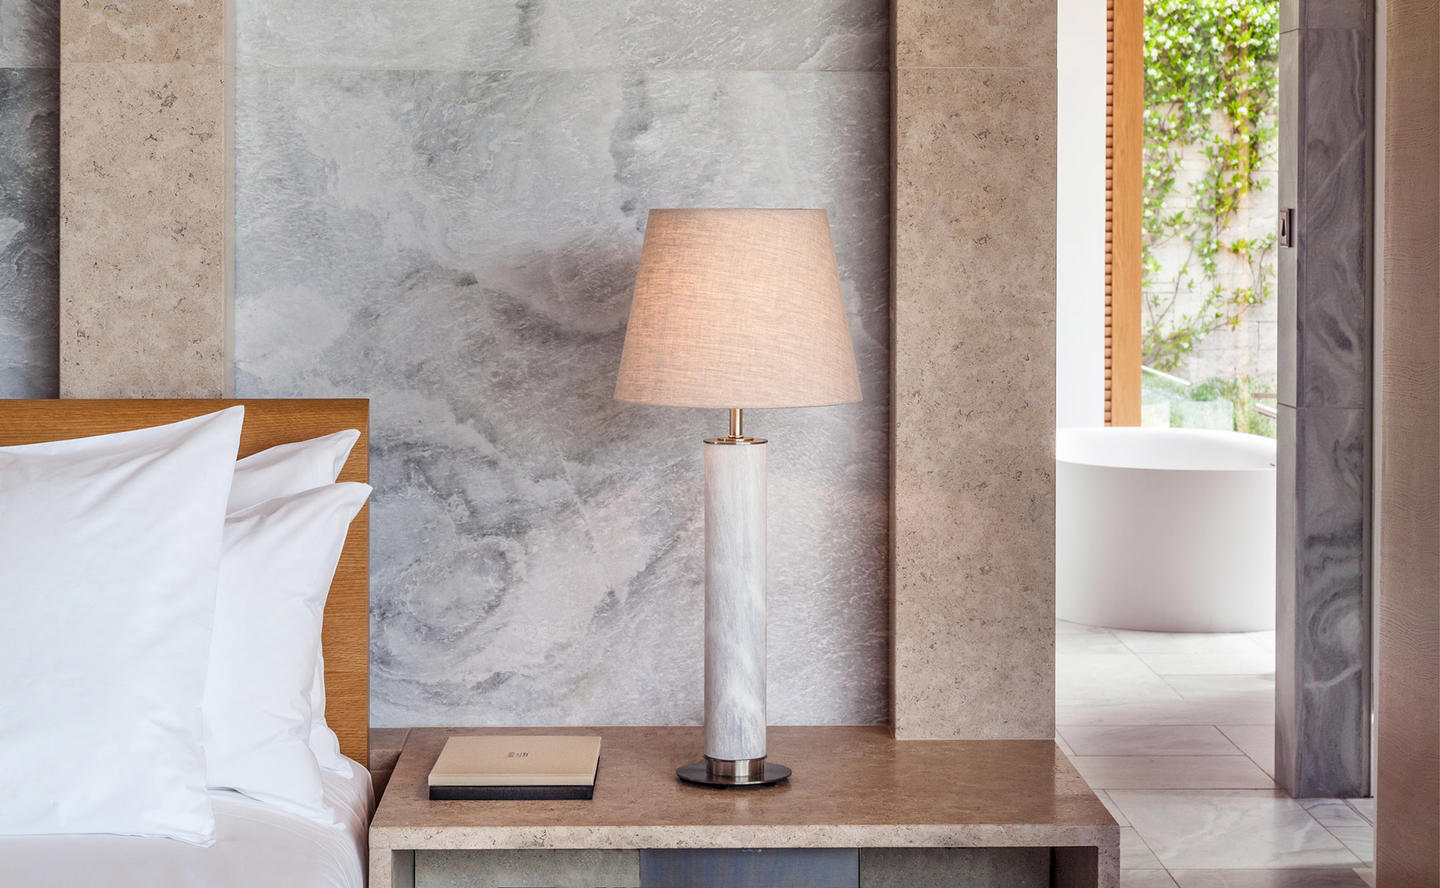 Bedside Table with Lamp, Suite, Two-Bedroom Villa - Amanzoe, Greece